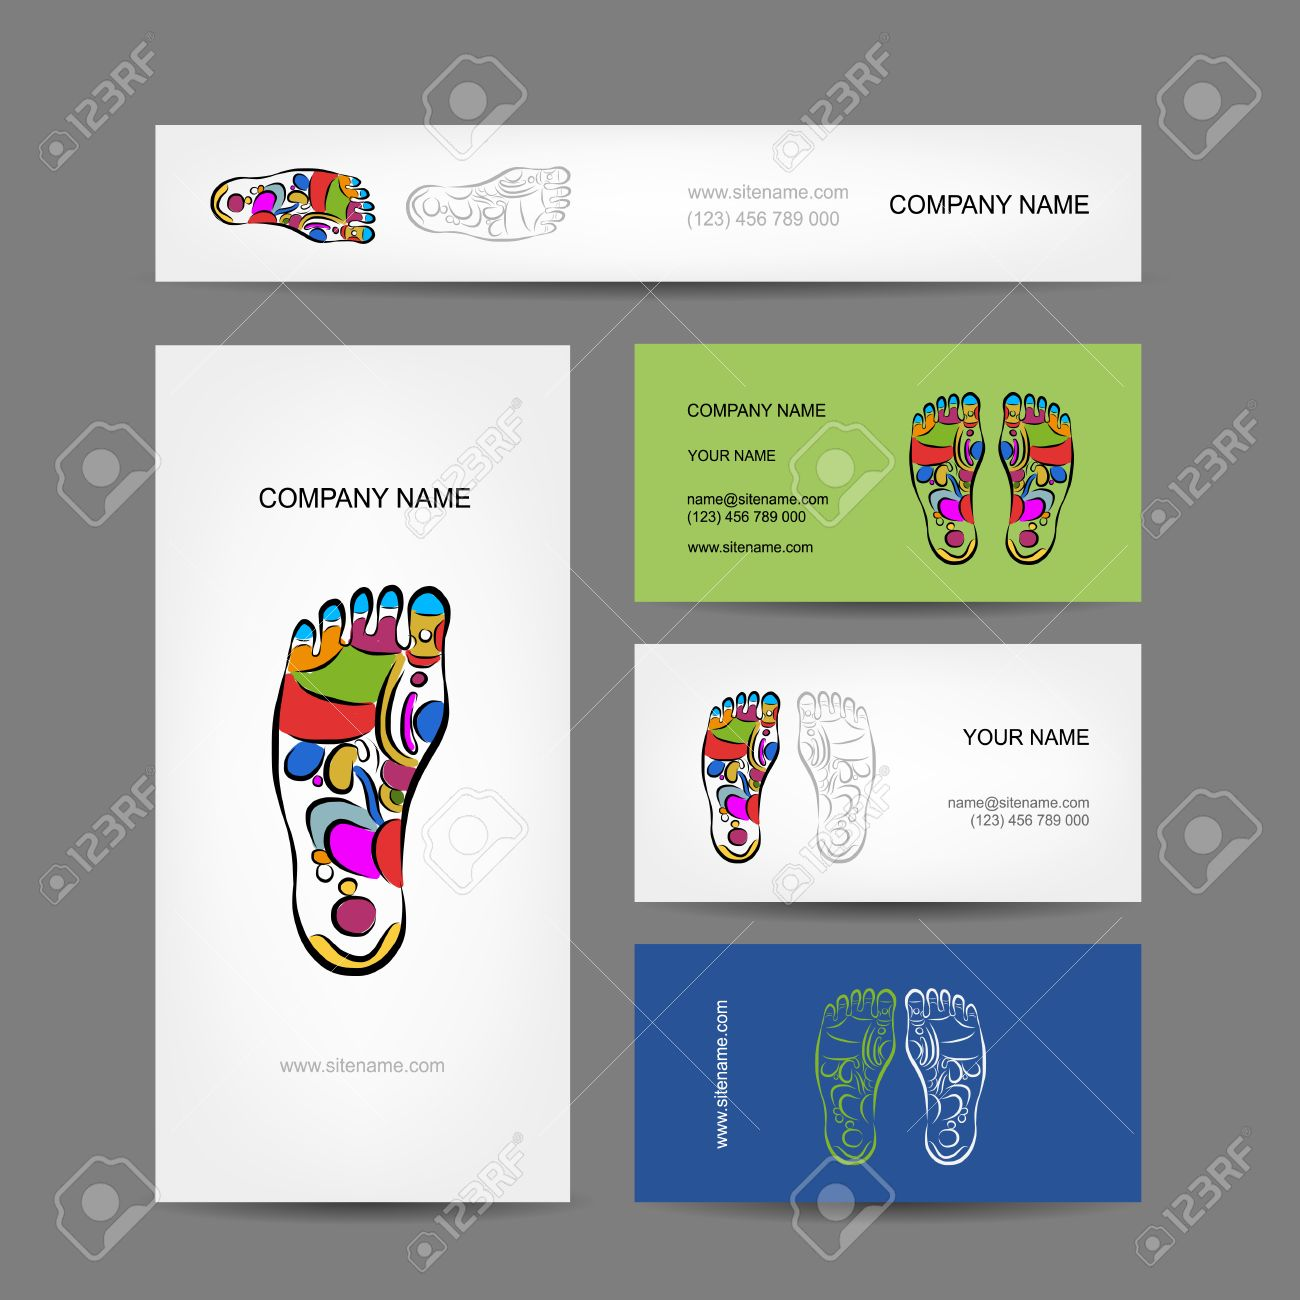 Les Cartes De Visite Conception Massage Rflexologie Plantaire